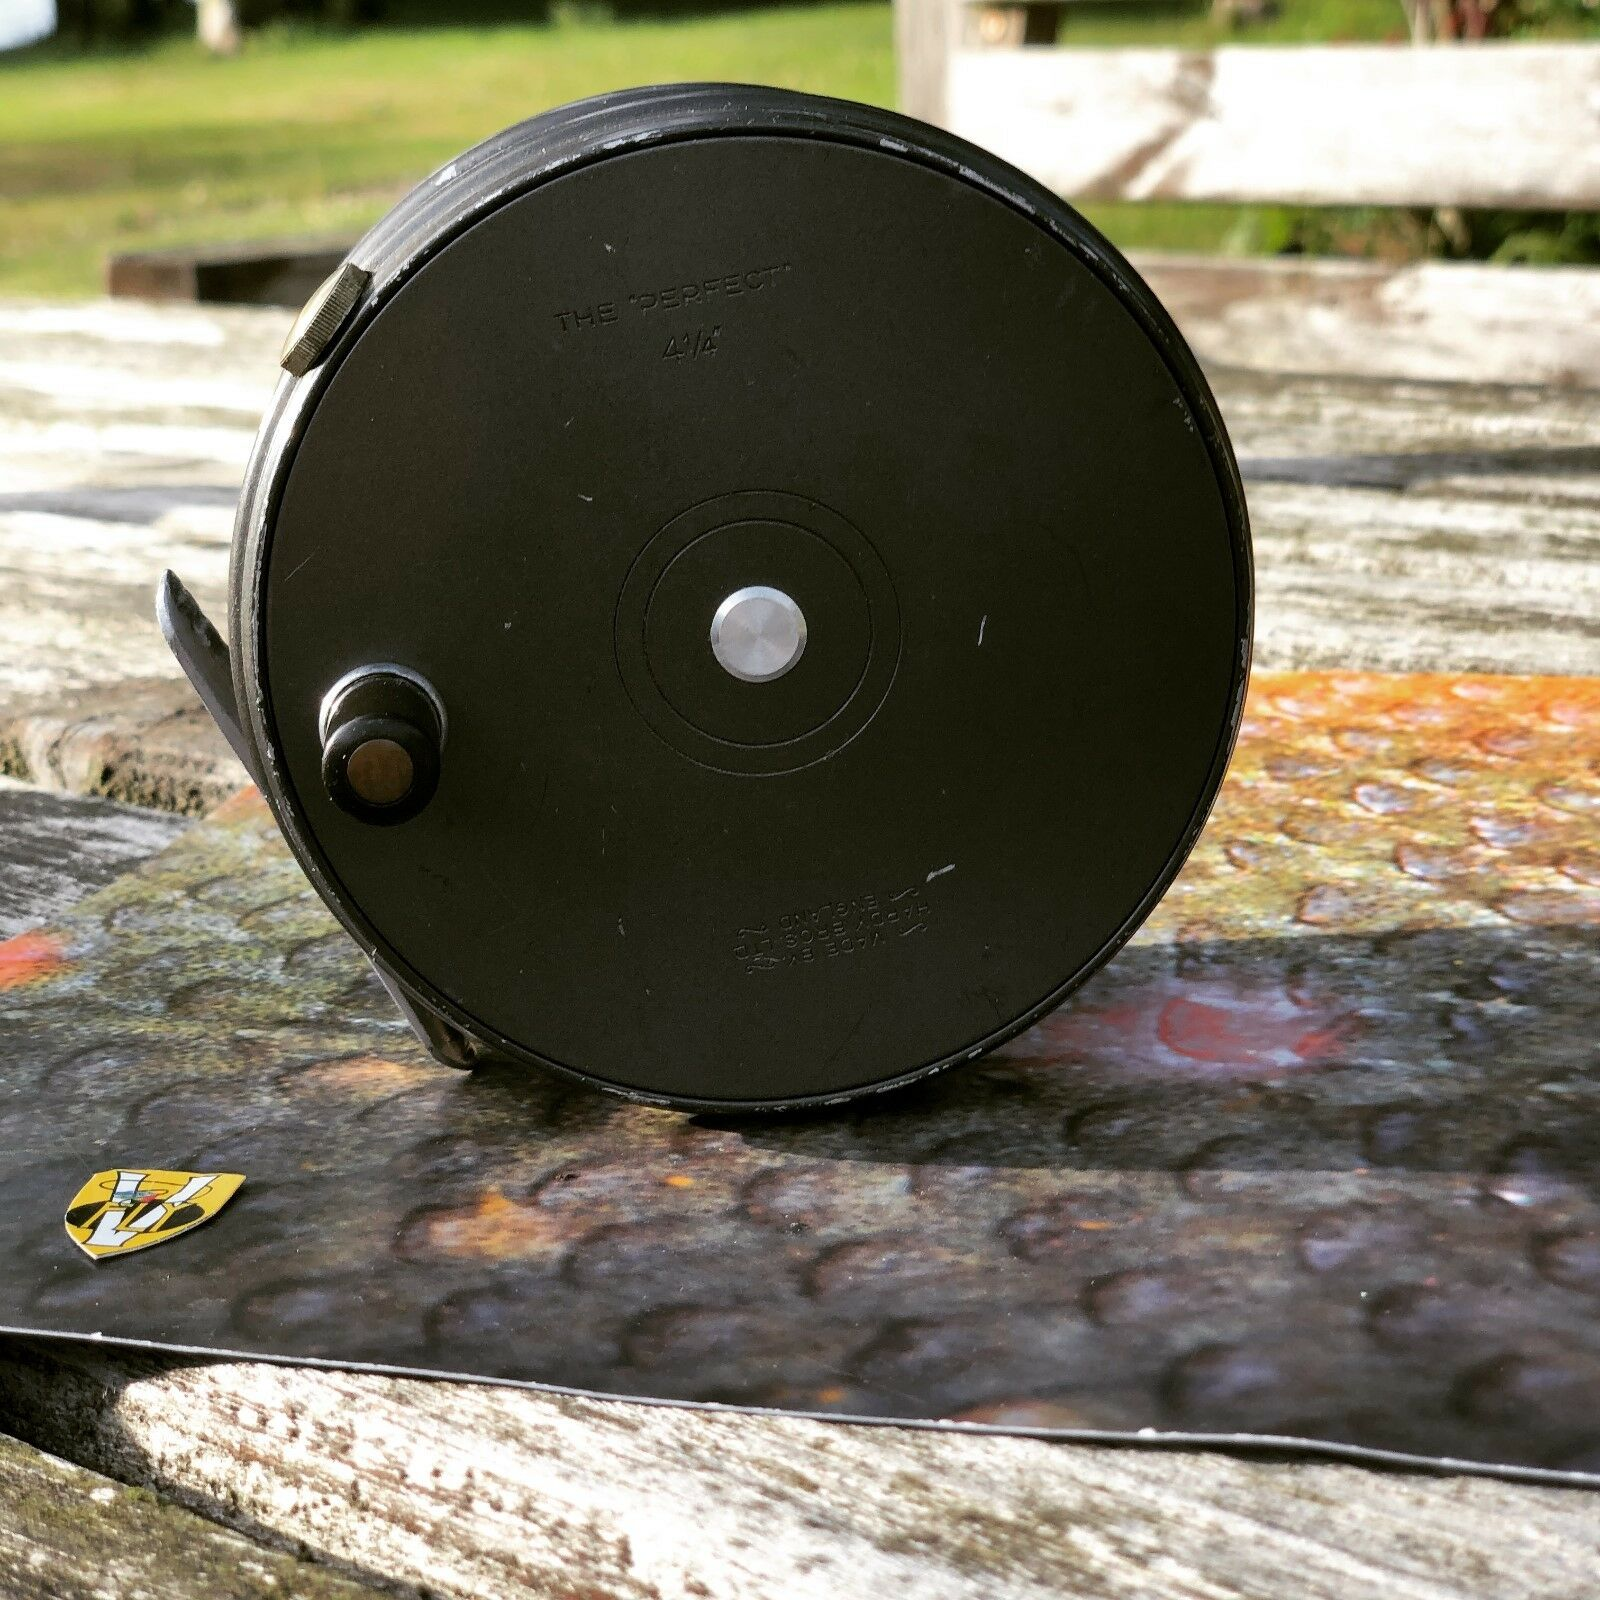 Rare Vintage Hardy Perfect 4 1/4 Inch Wide Body R H W Salmon Spey Fly Reel